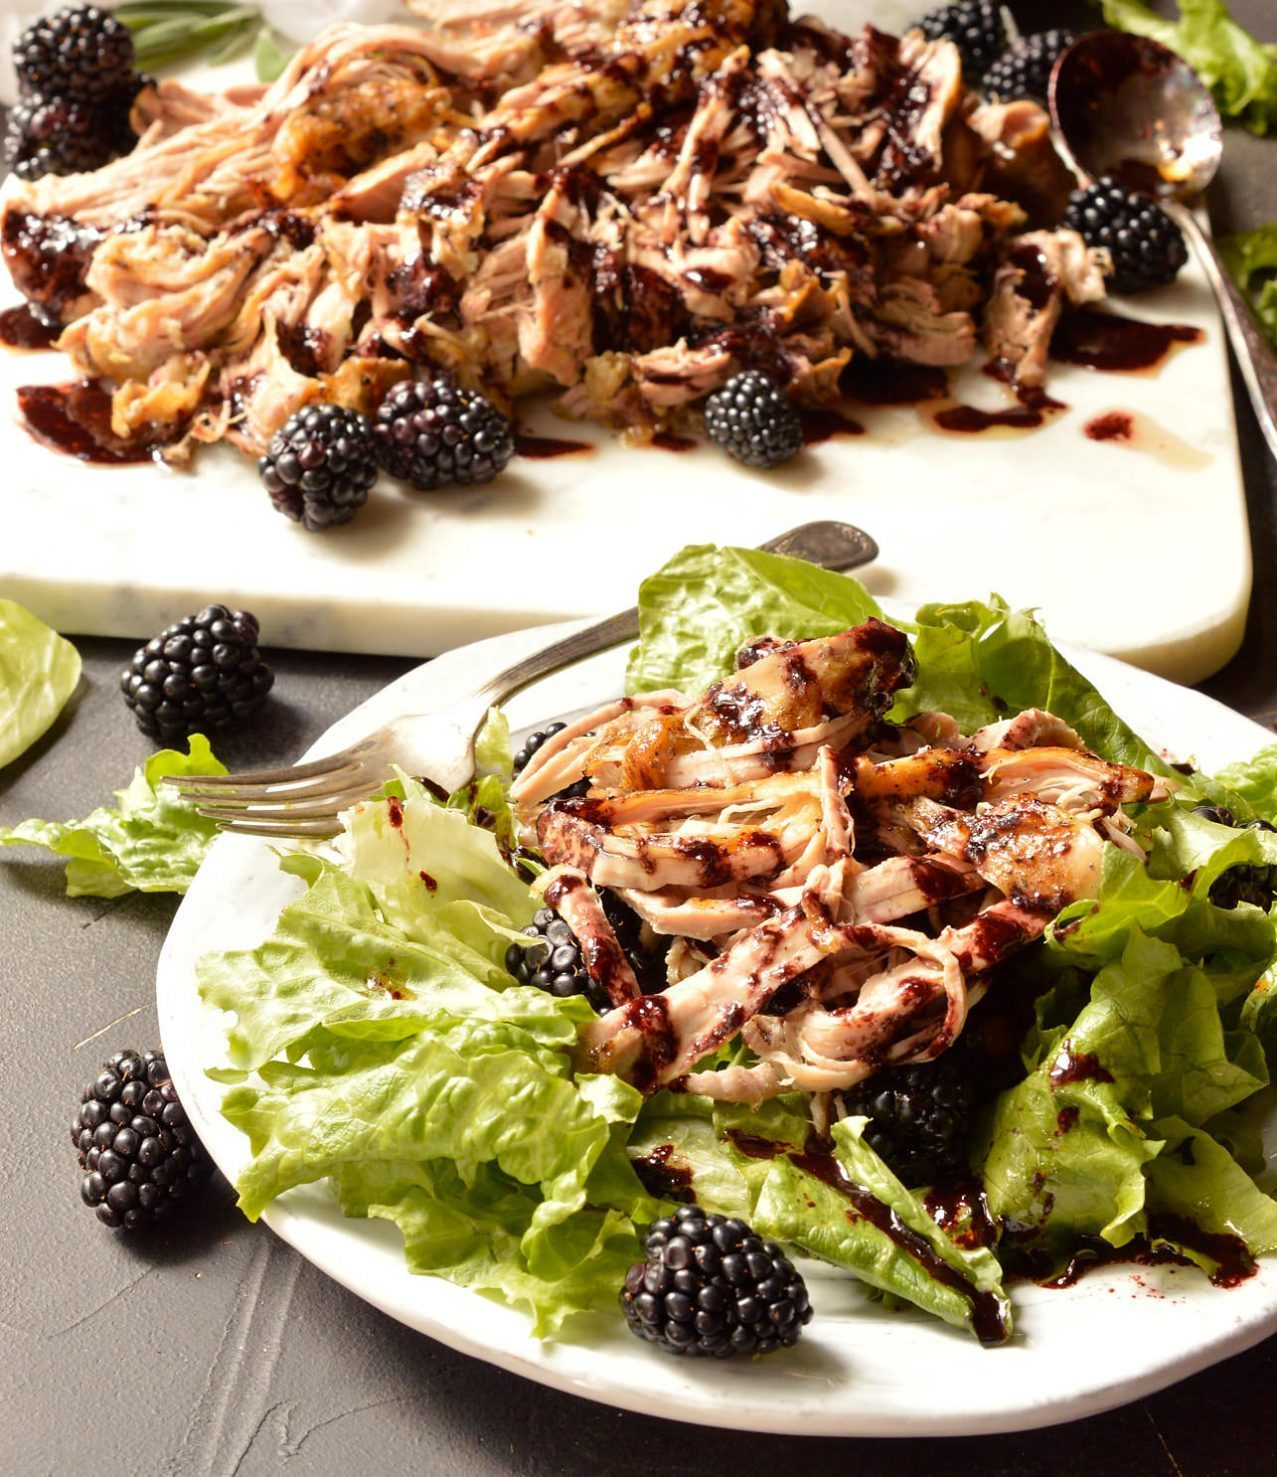 HEALTHY KETO CROCKPOT RECIPES TO EASE YOU INTO THE NEW YEAR by popular San Francisco life and style blog, Just Add Glam: image of slow cooker pork tenderloin.